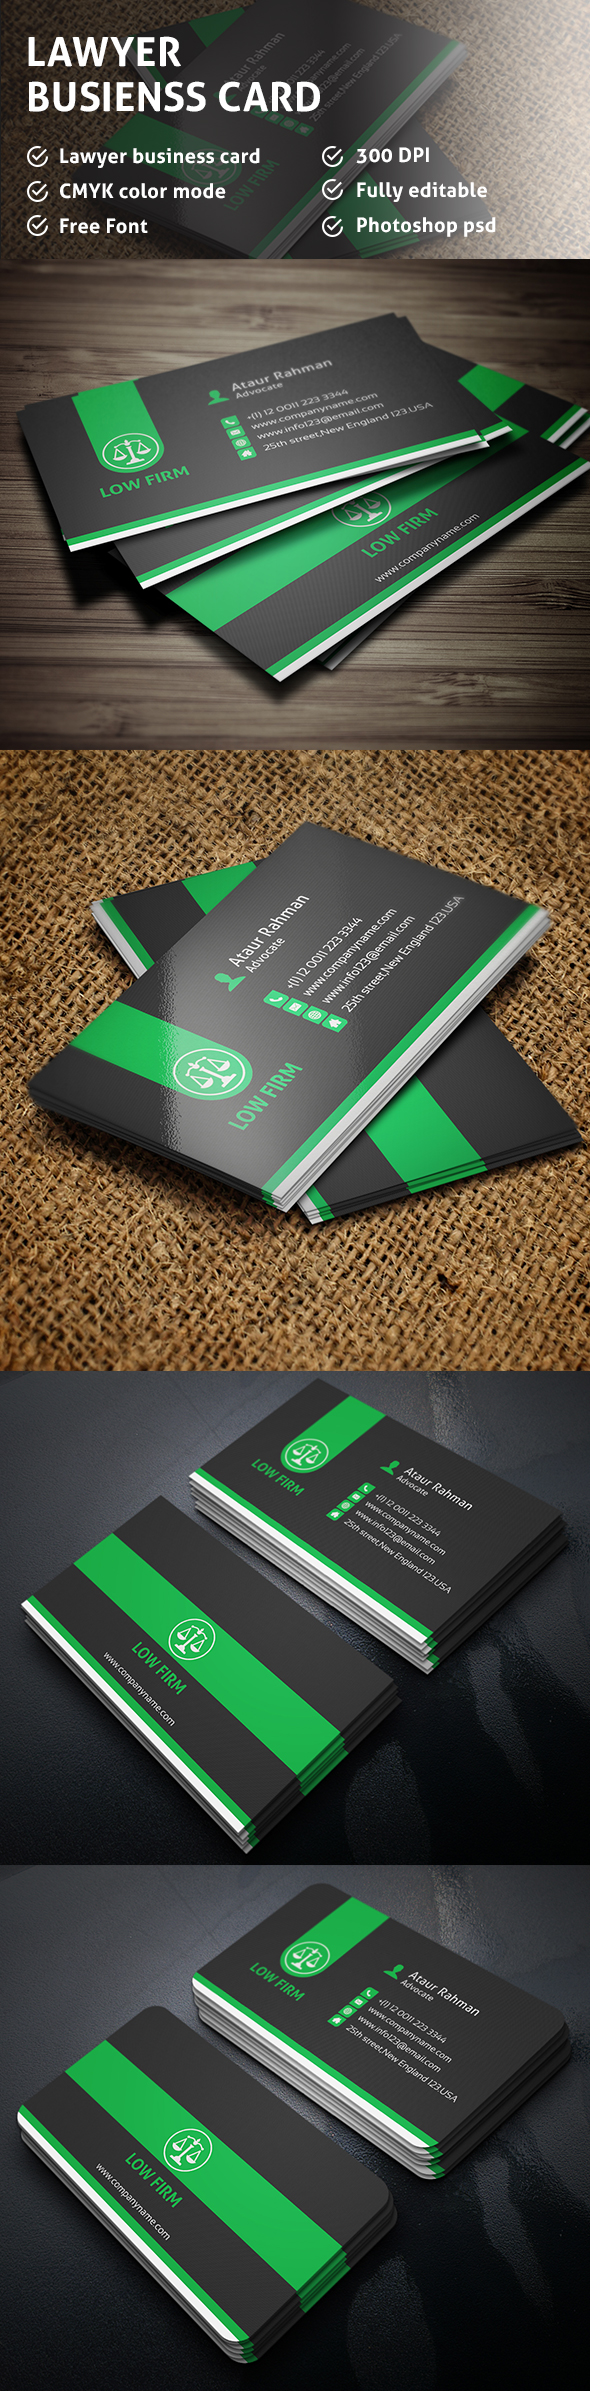 Free Lawyer Business Card on Behance